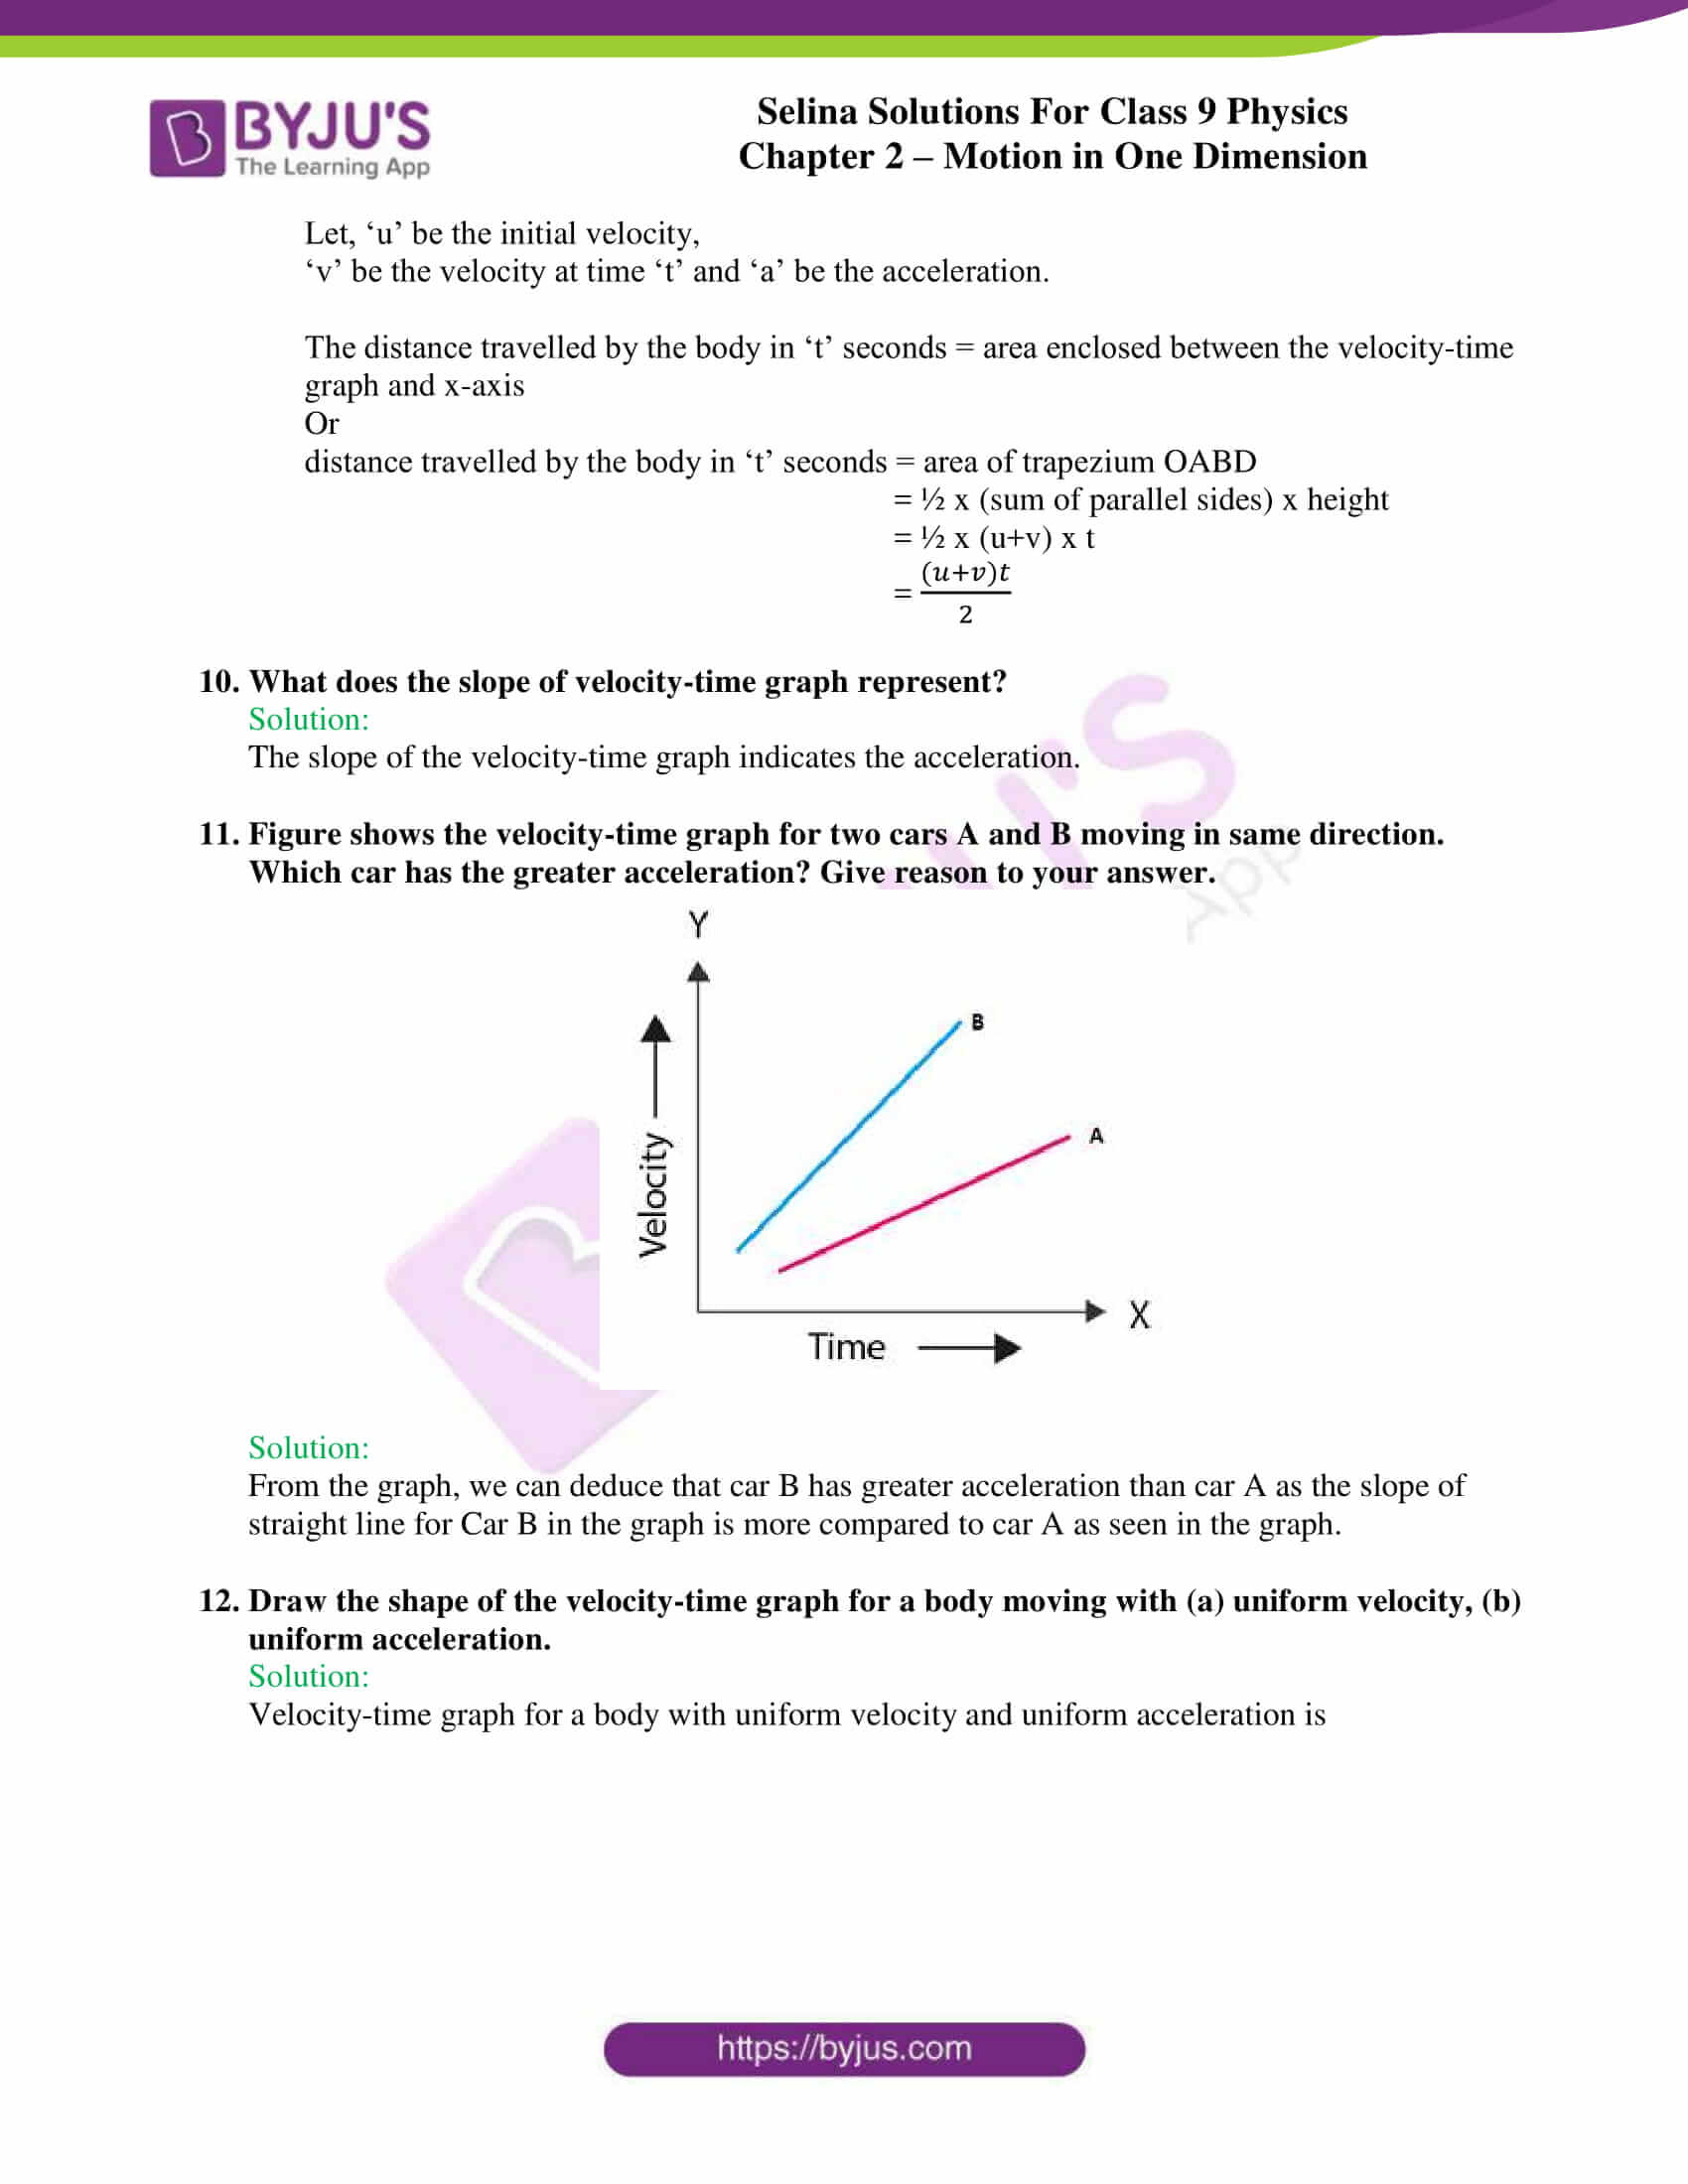 selina solutions class 9 physics chapter 2 Motion in One Dimension part 15